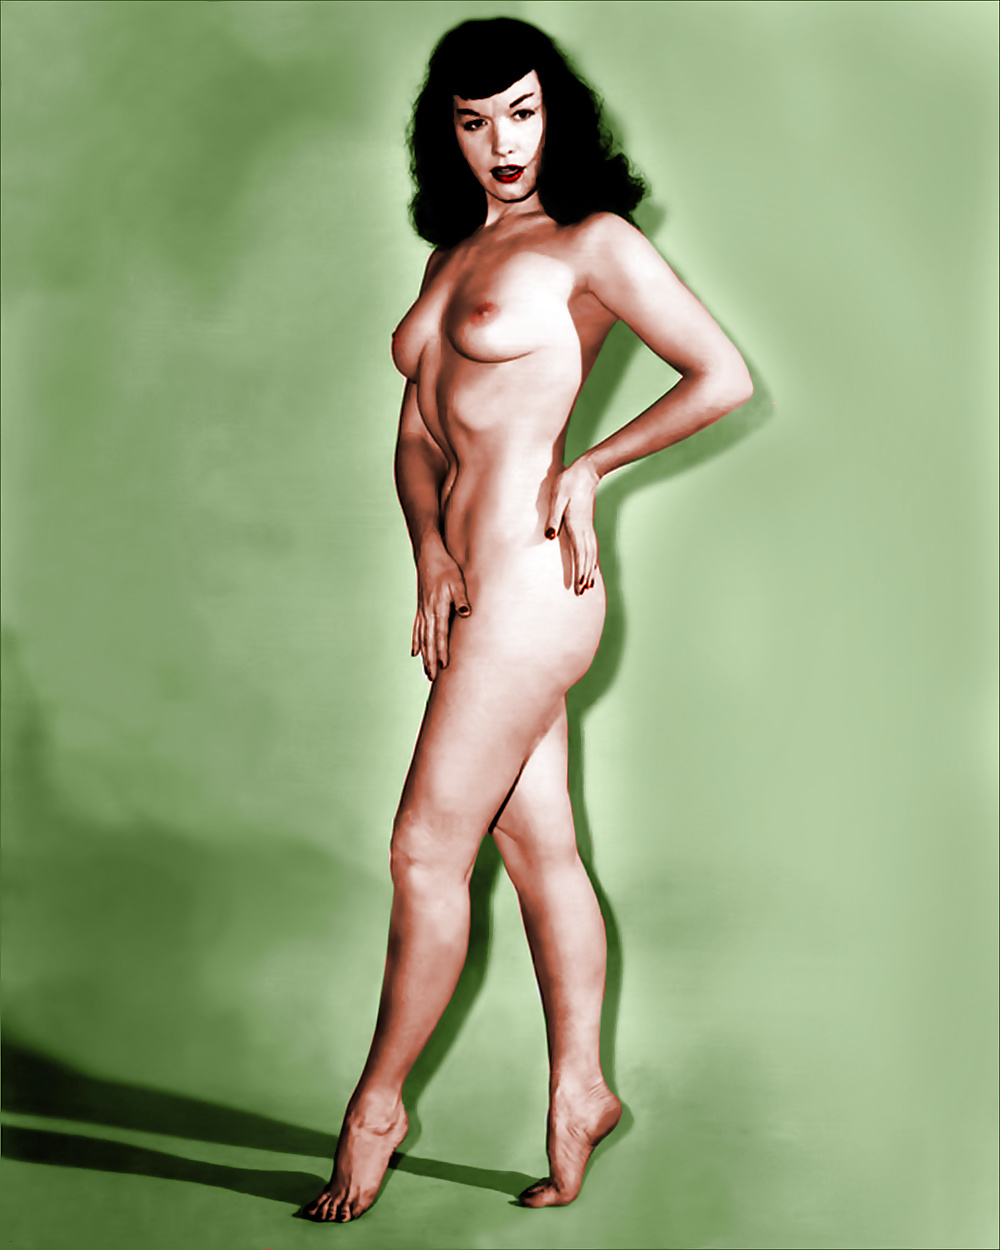 Bettypage photographs nude